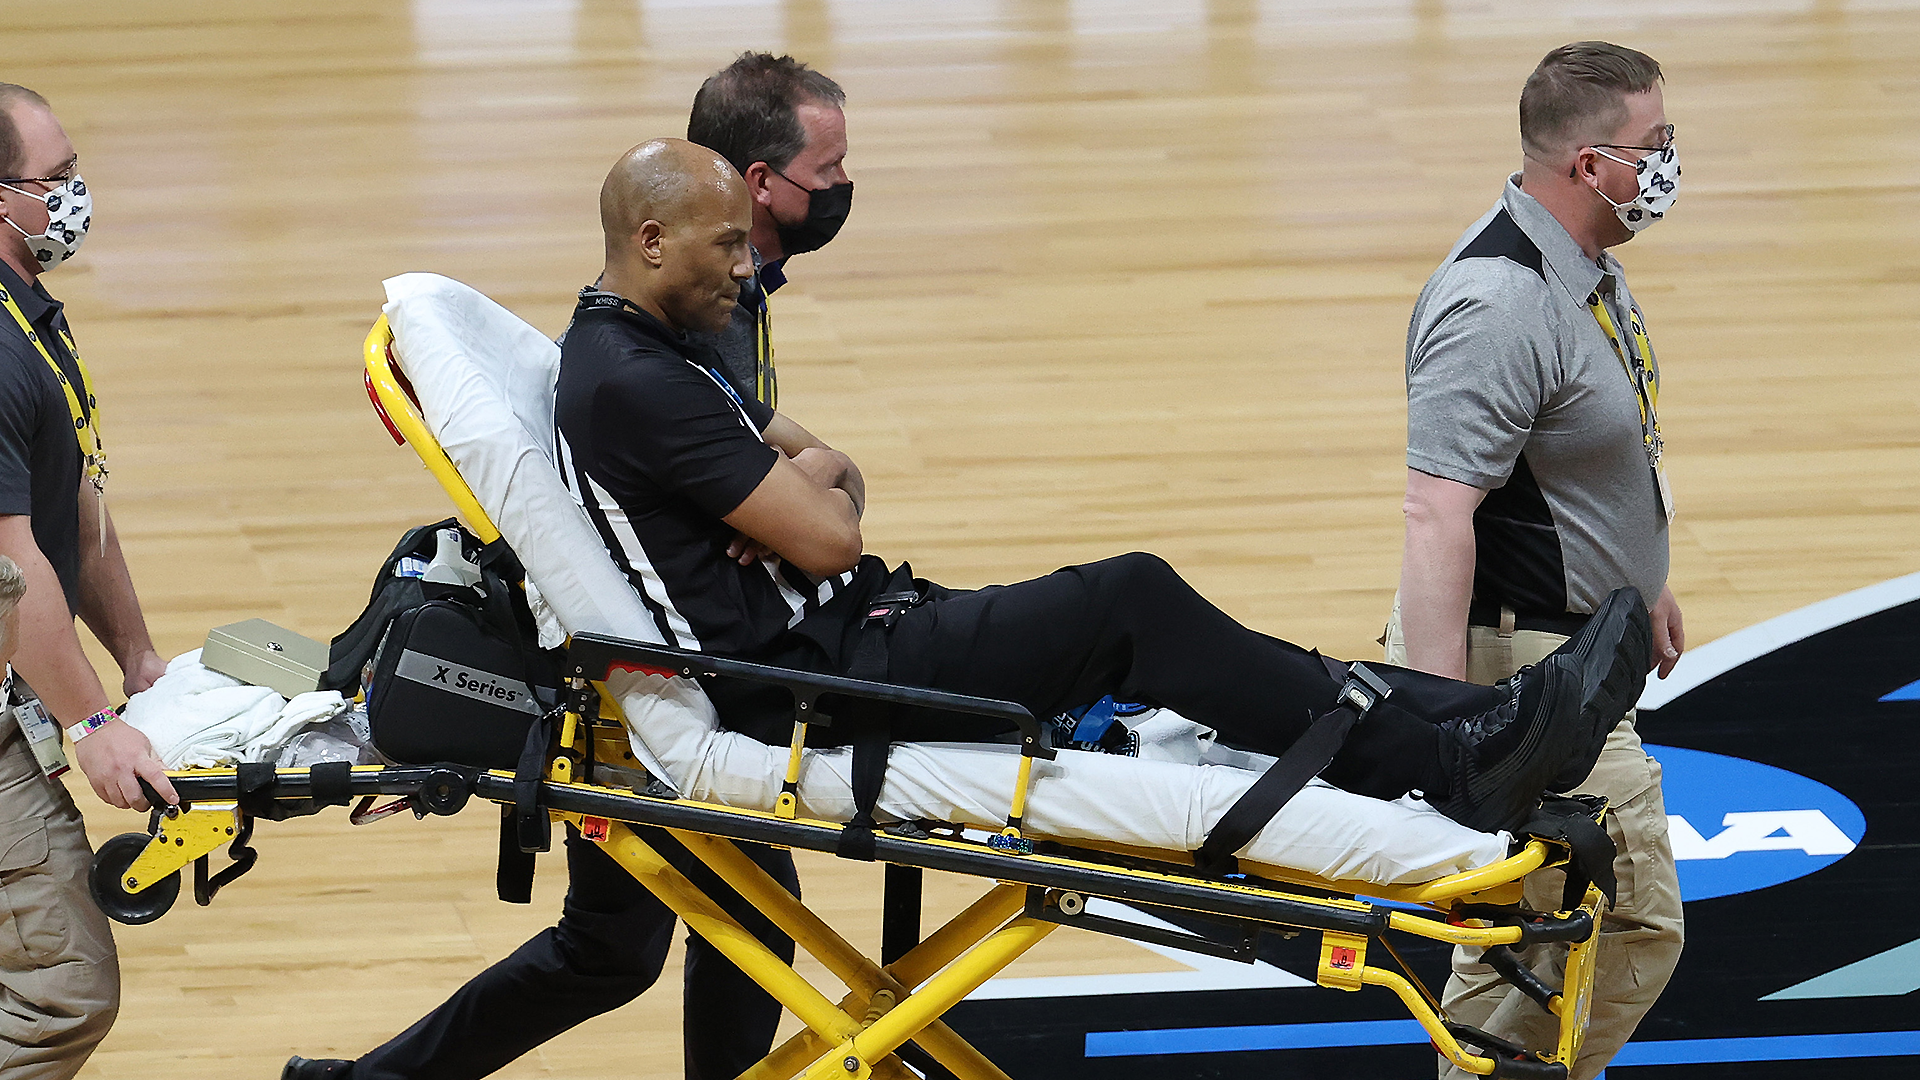 NCAA Championship official Bert Smith has fallen, he is driven to the stretcher in the Gonzaga-USC Elite Eight game